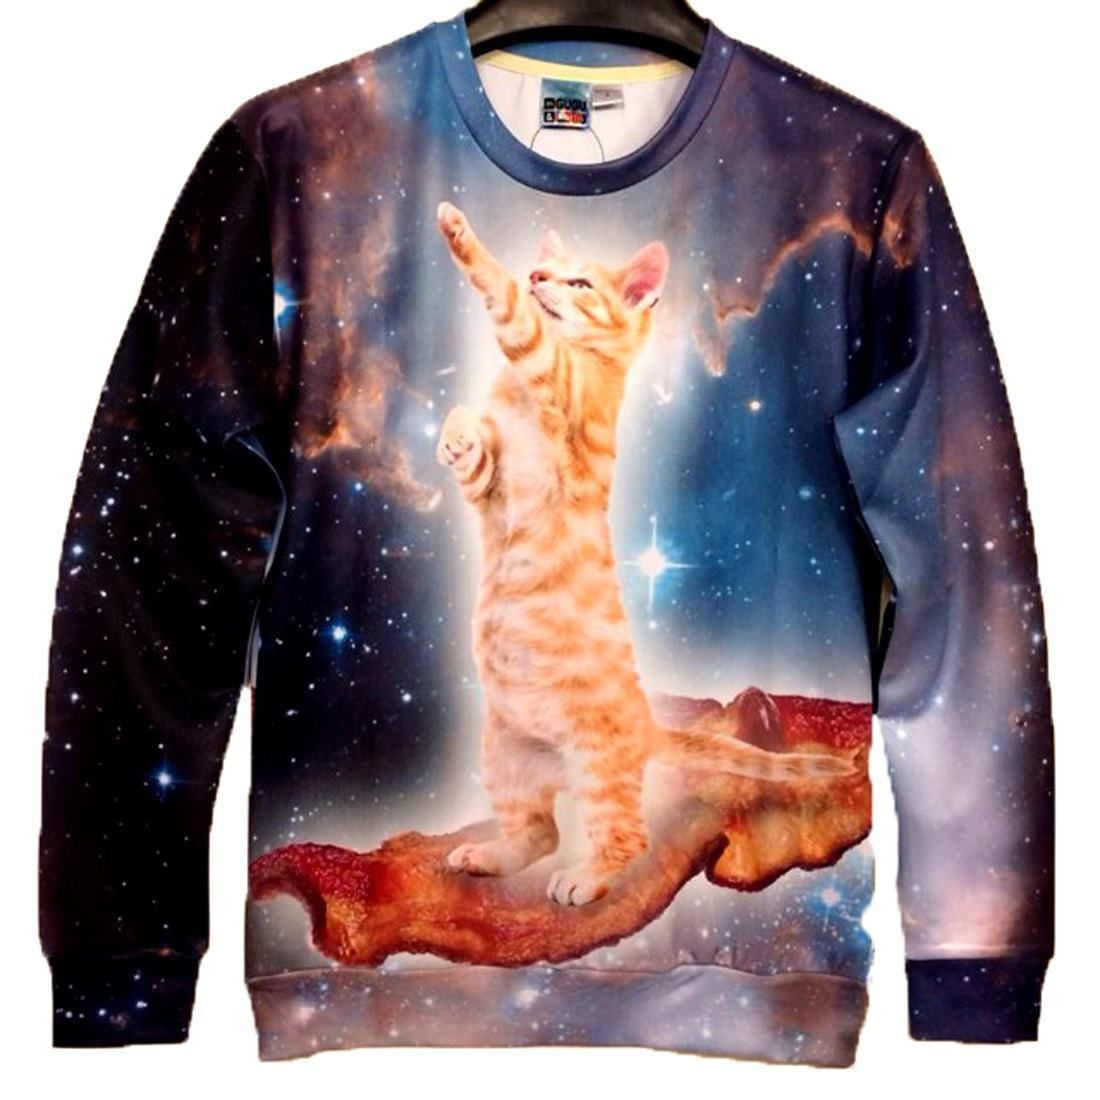 Kitty Cat Riding On Bacon In Space All Over Print Unisex Pullover Sweatshirt Sweatshirts Galaxy Sweatshirt Sweatshirts Hoodie [ 1100 x 1100 Pixel ]